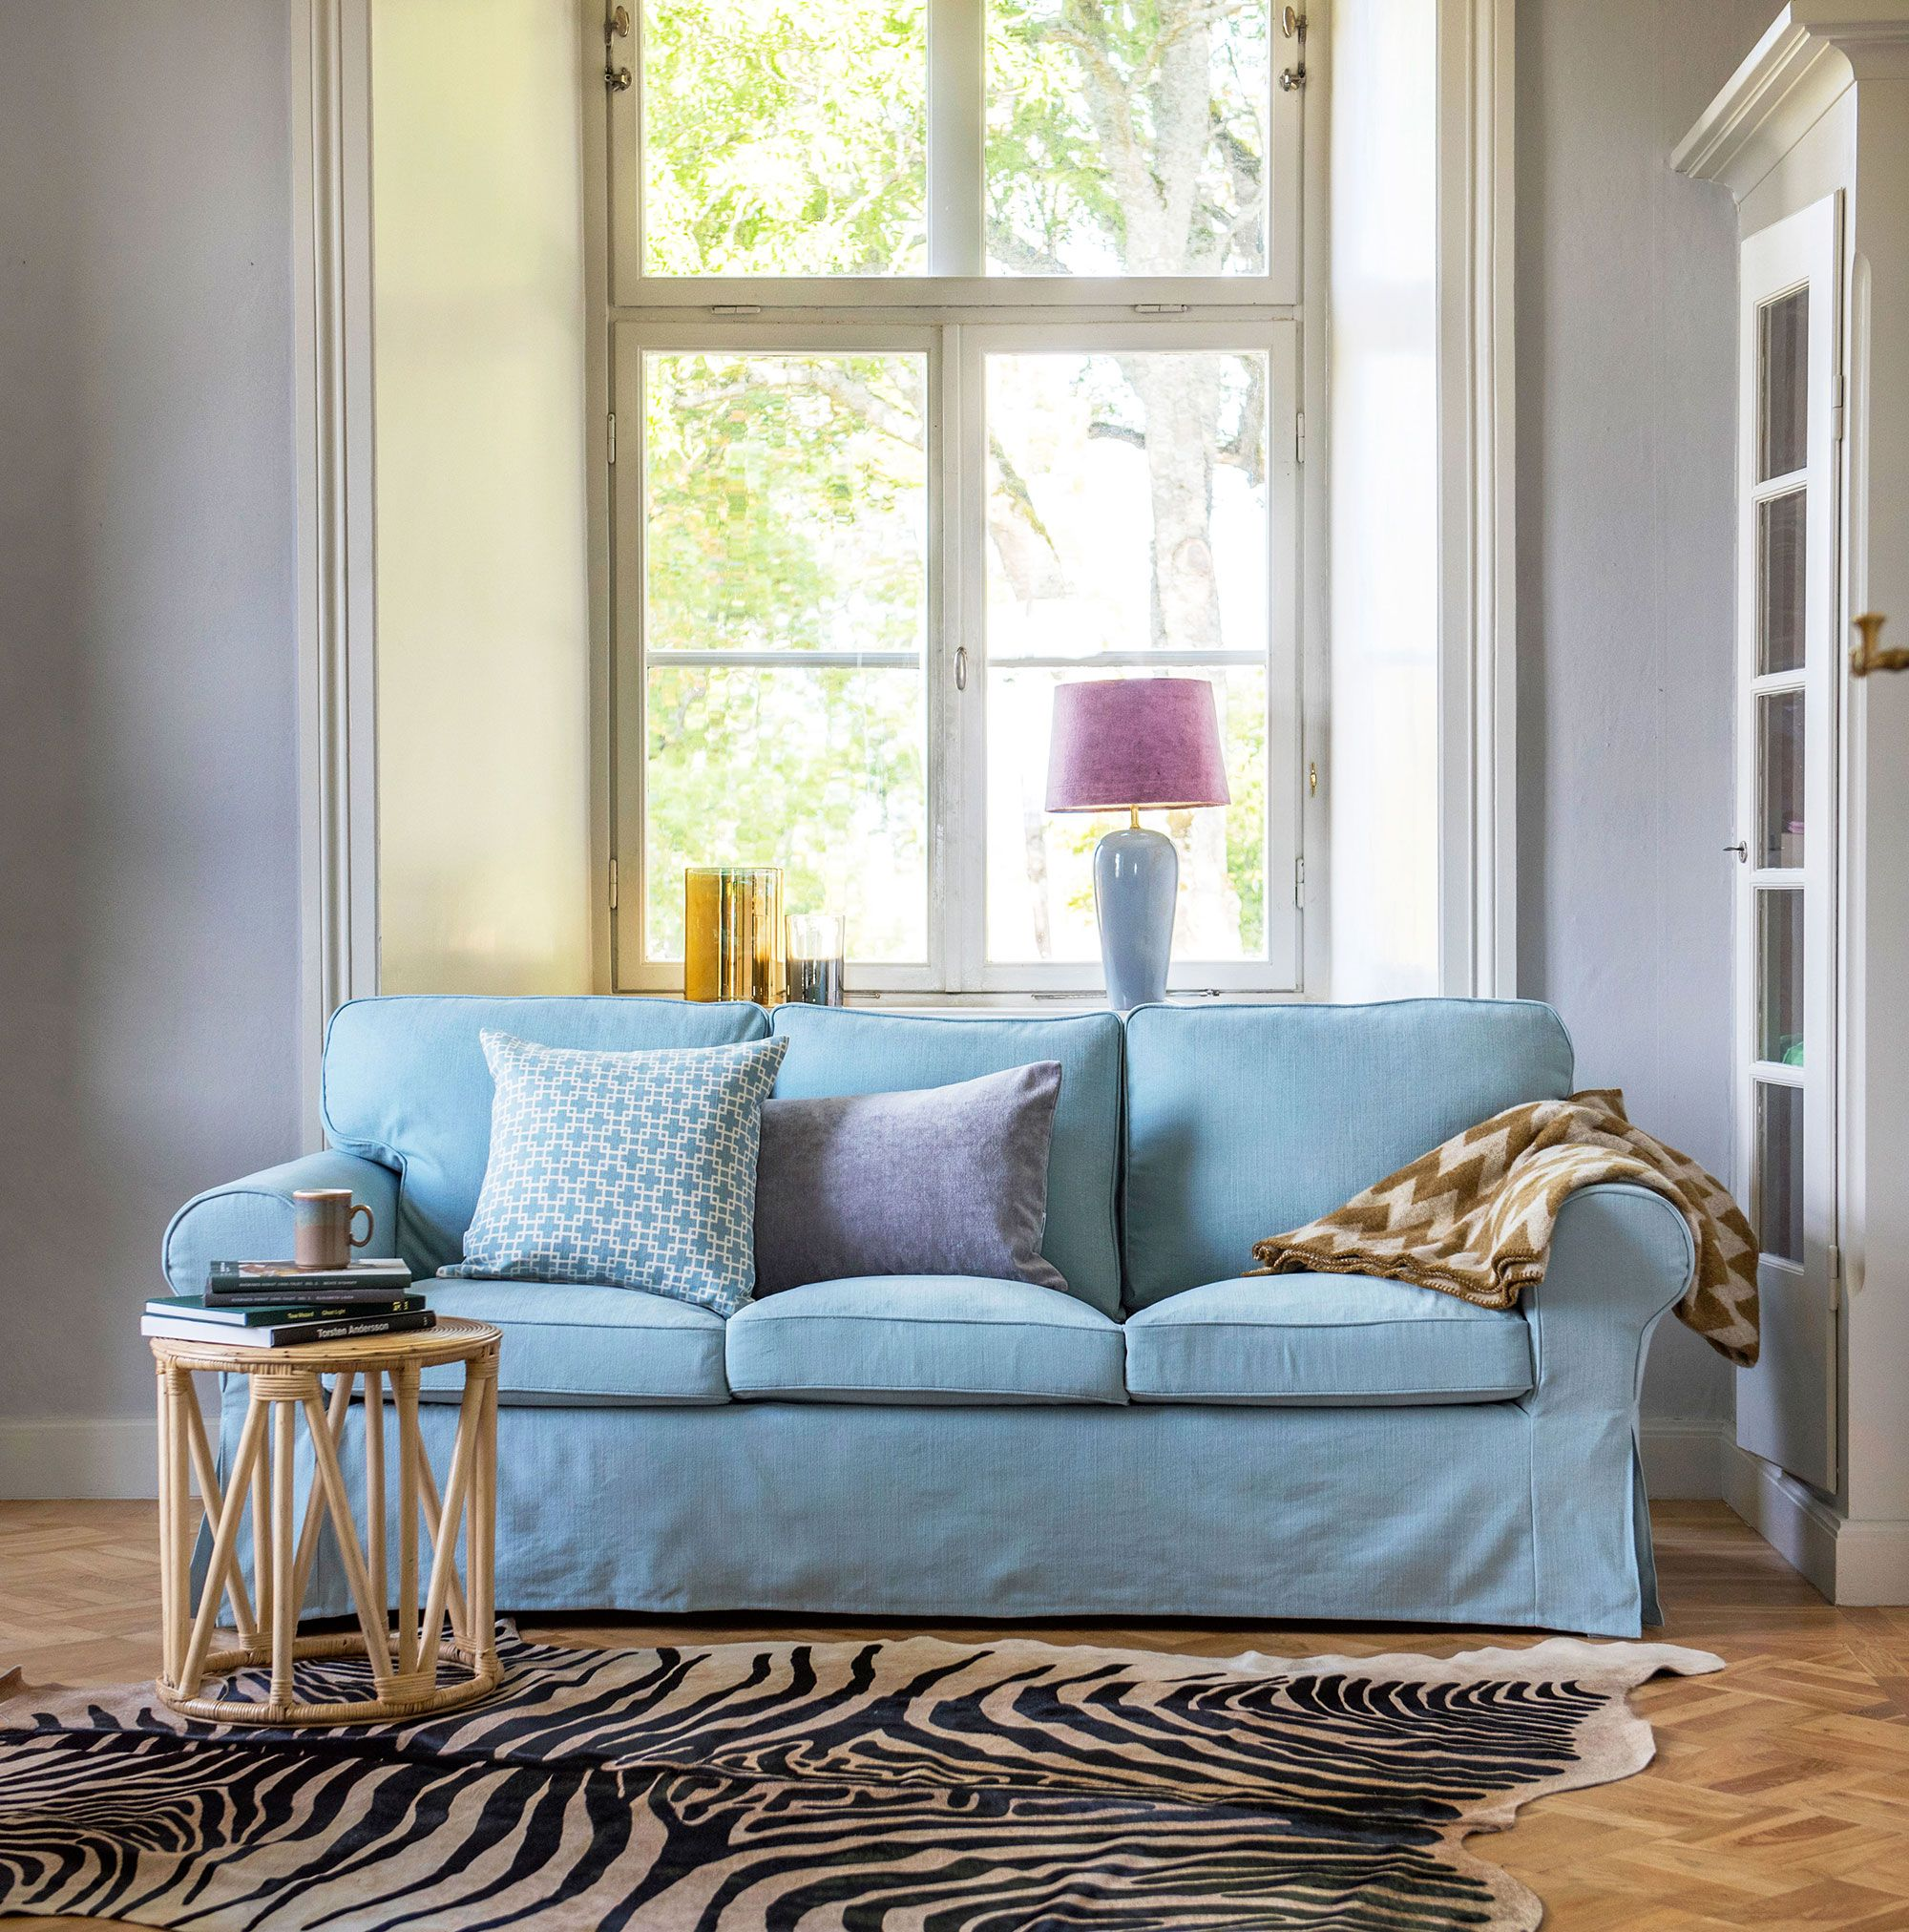 Baby blue light blue sofa with a faux zebra skin rug